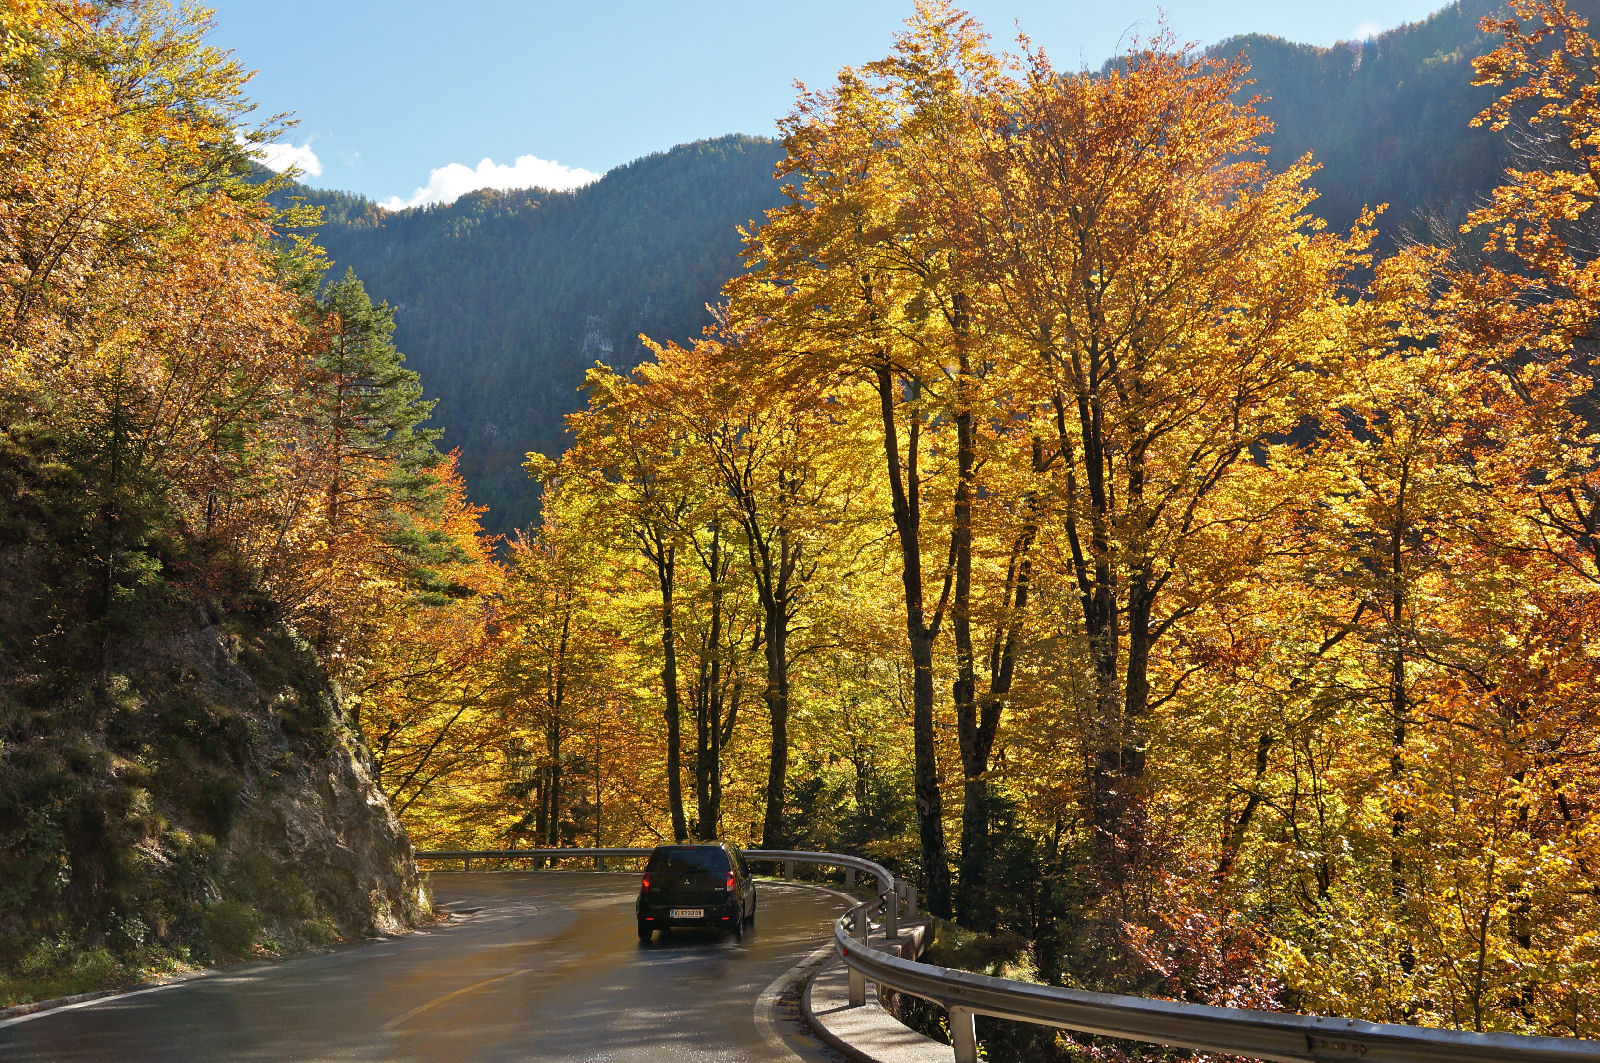 loiblpass-ljubelj-road-autumn